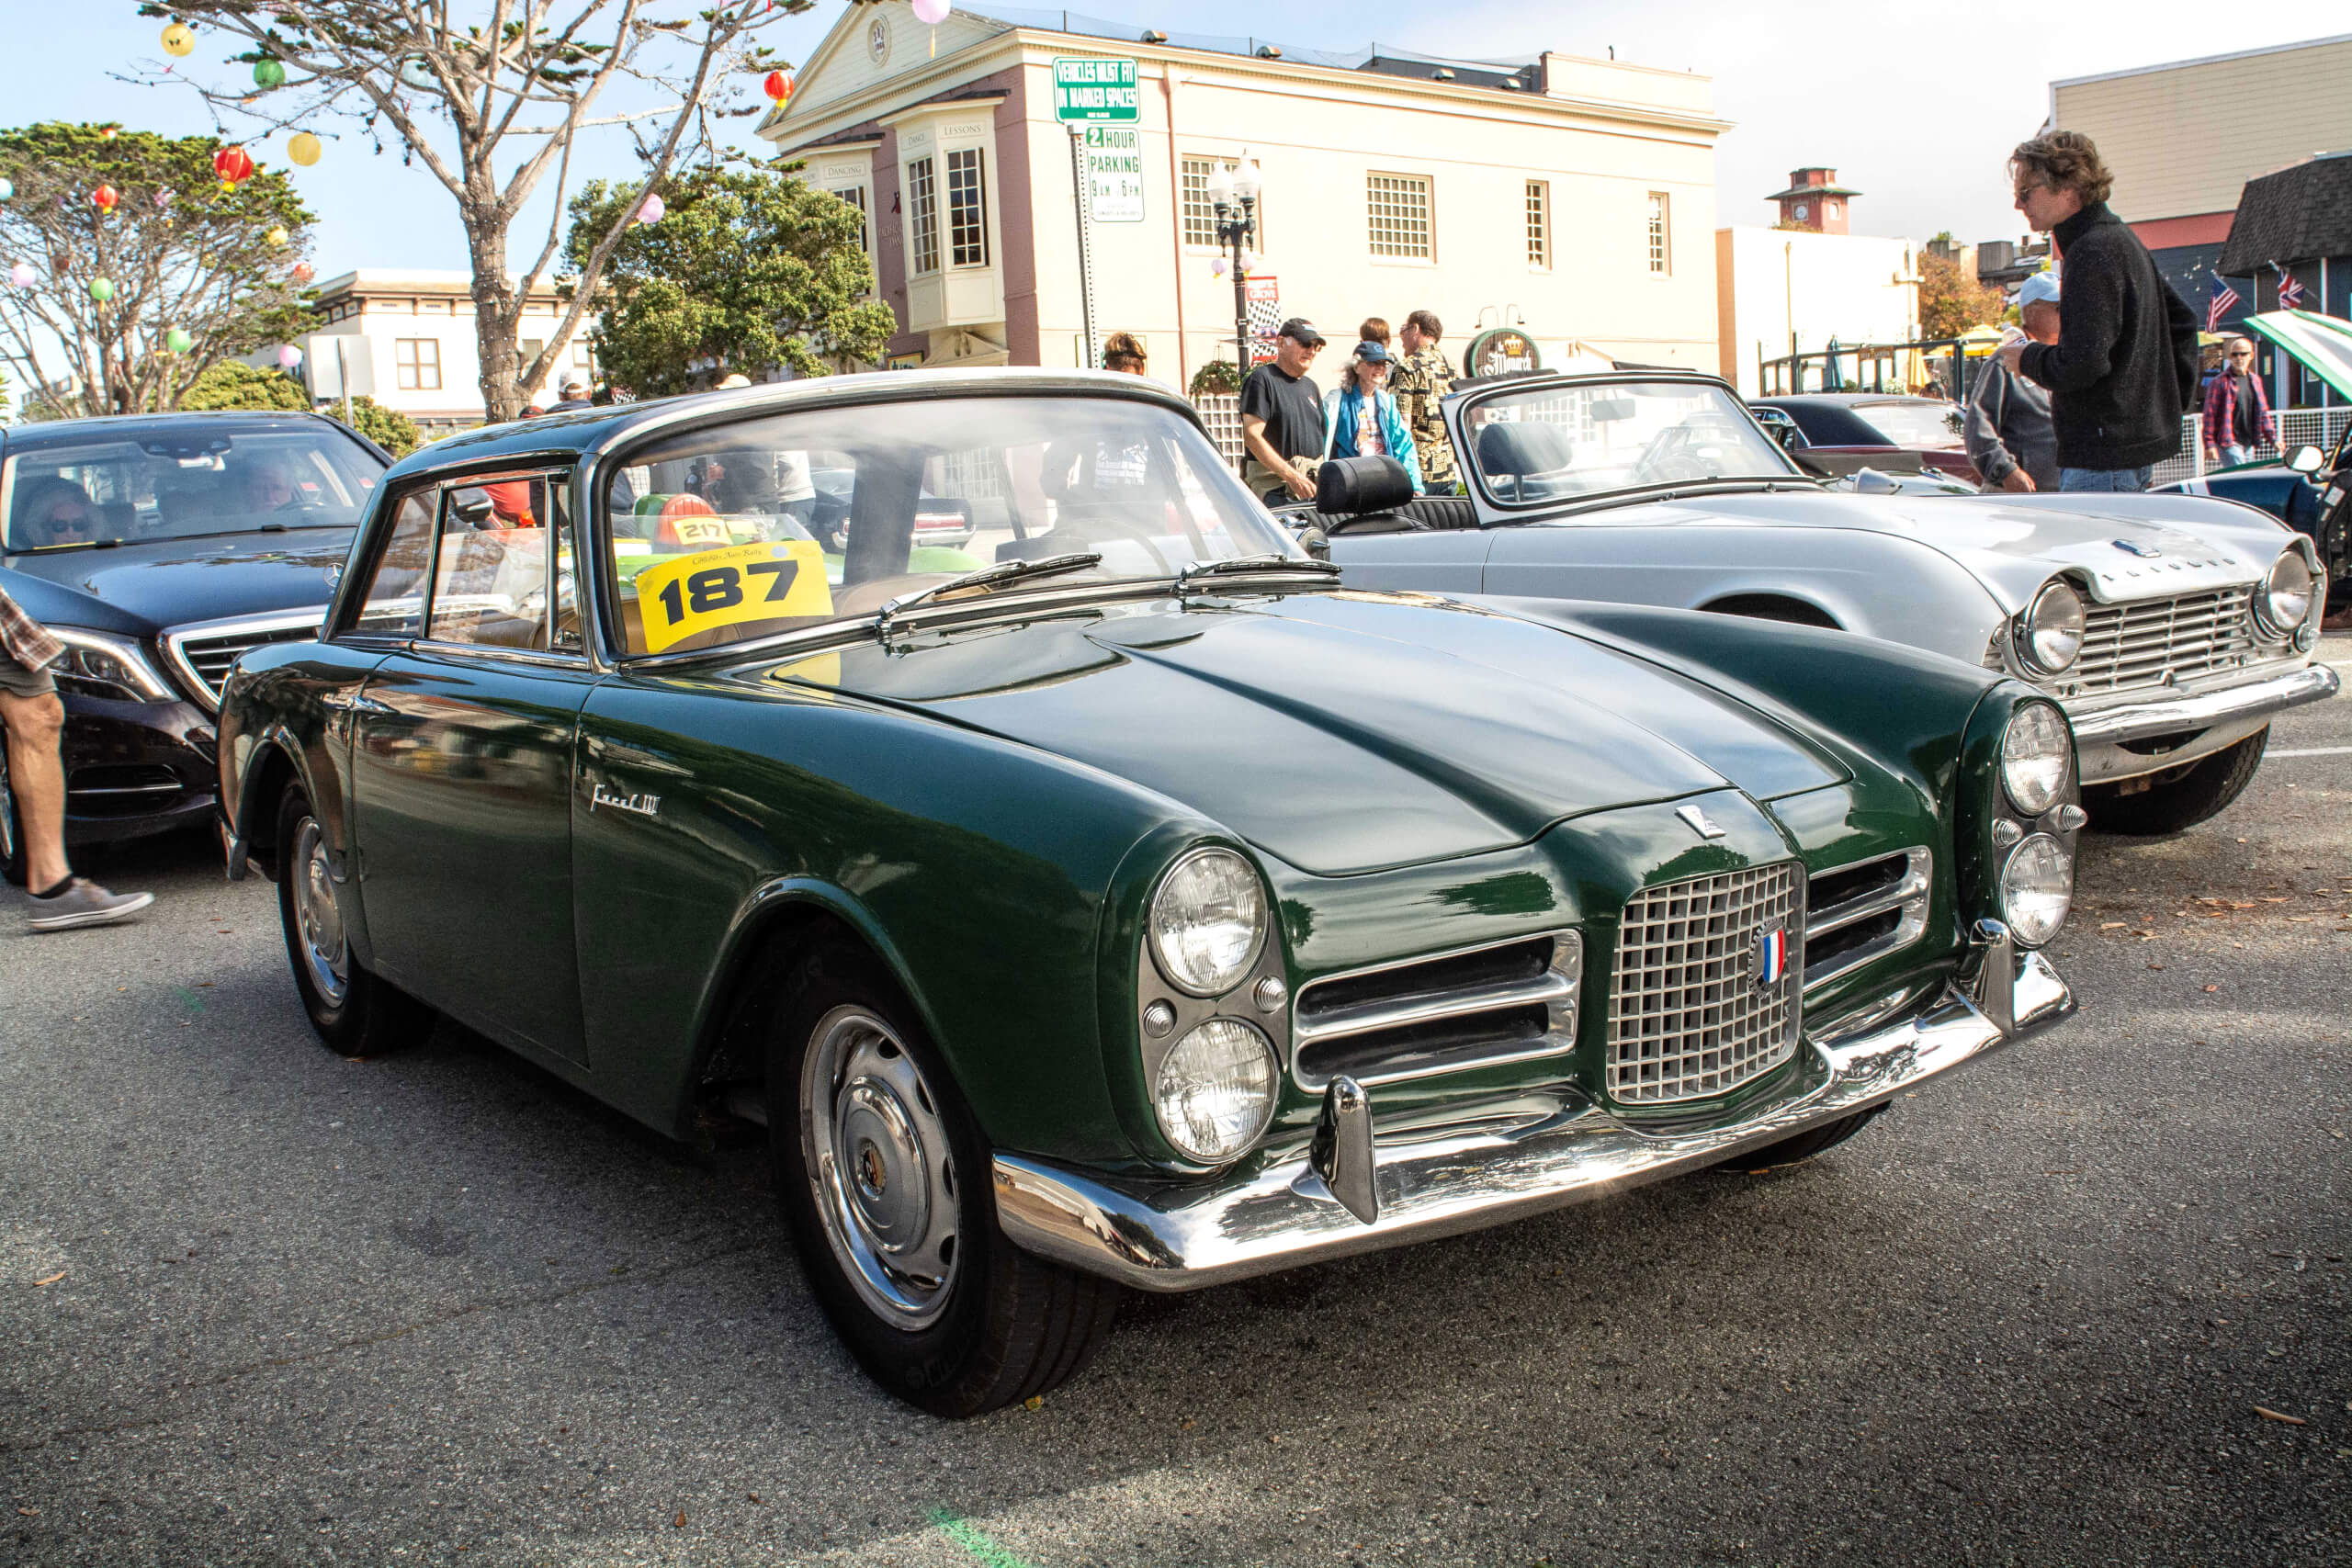 This 1963 Facel Vega III was ordered new at the Paris Motor Show.